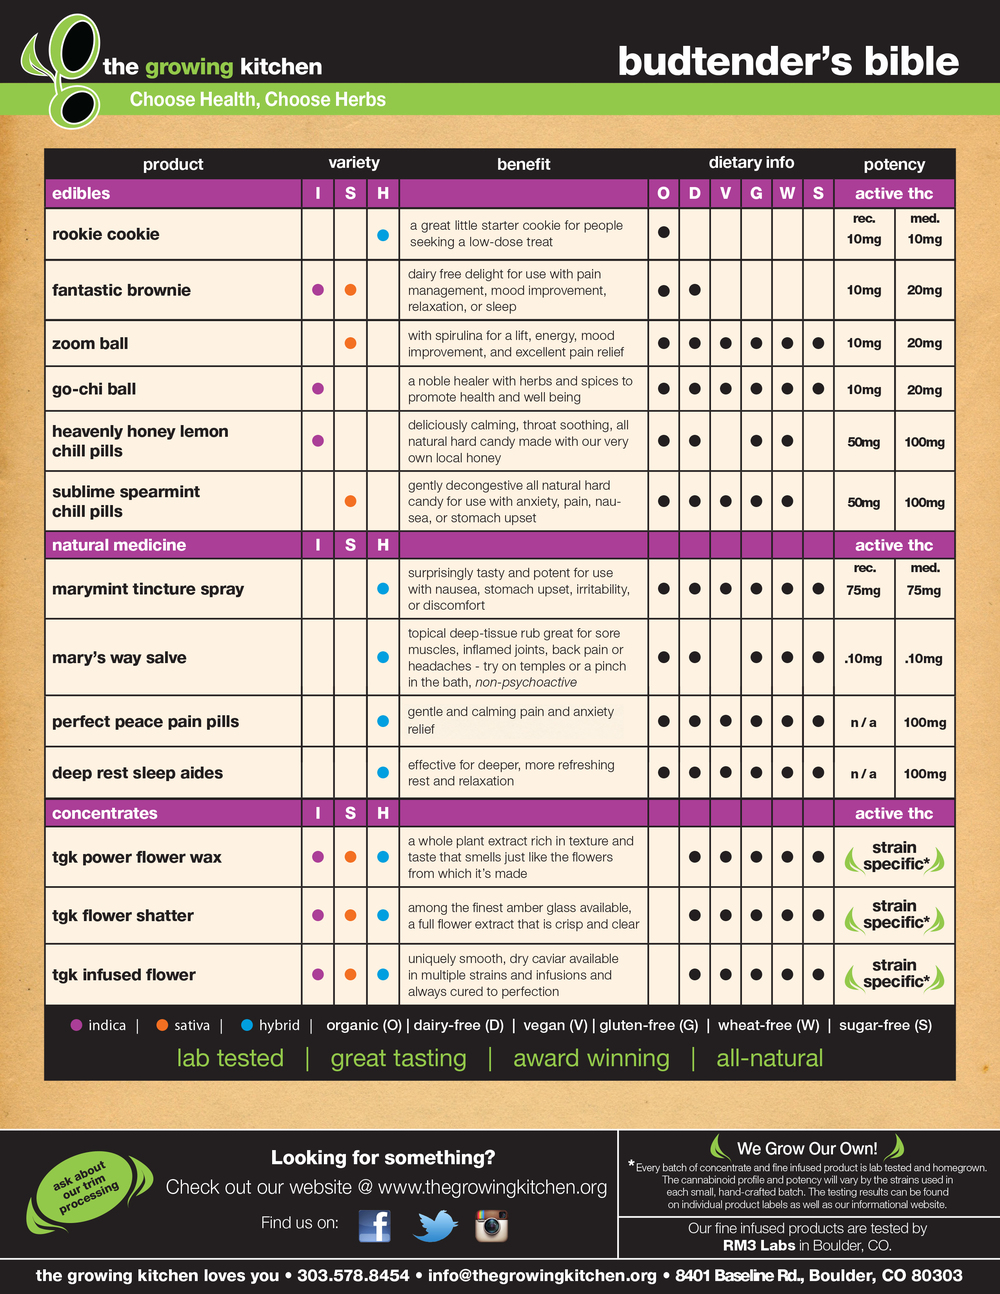 @ Budtender's Bible (Menu).jpg